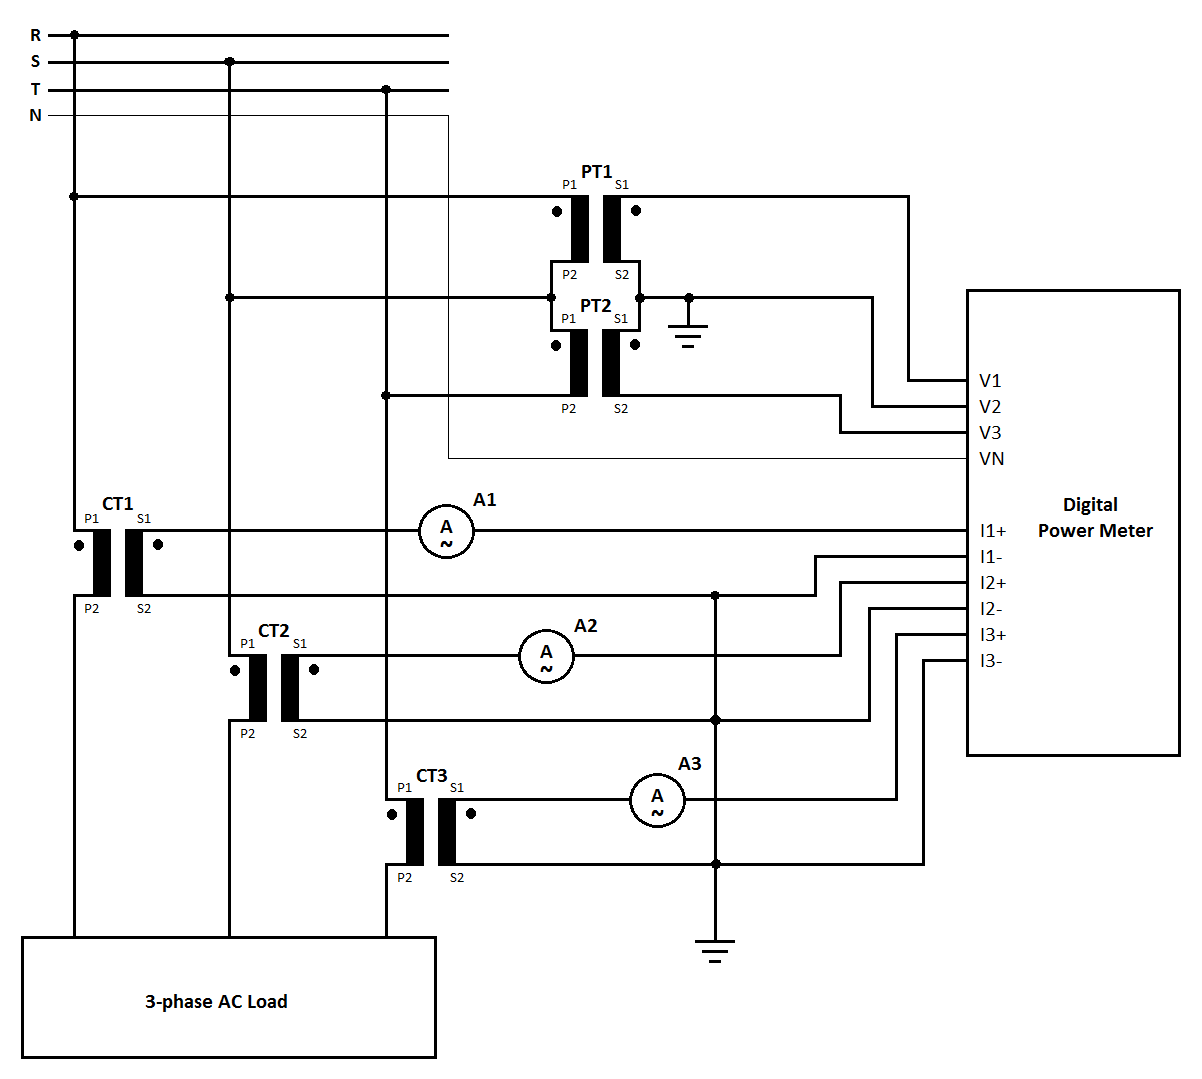 hight resolution of picture 1 measurement circuit for 3 phase ac power 3ct 2pt connection